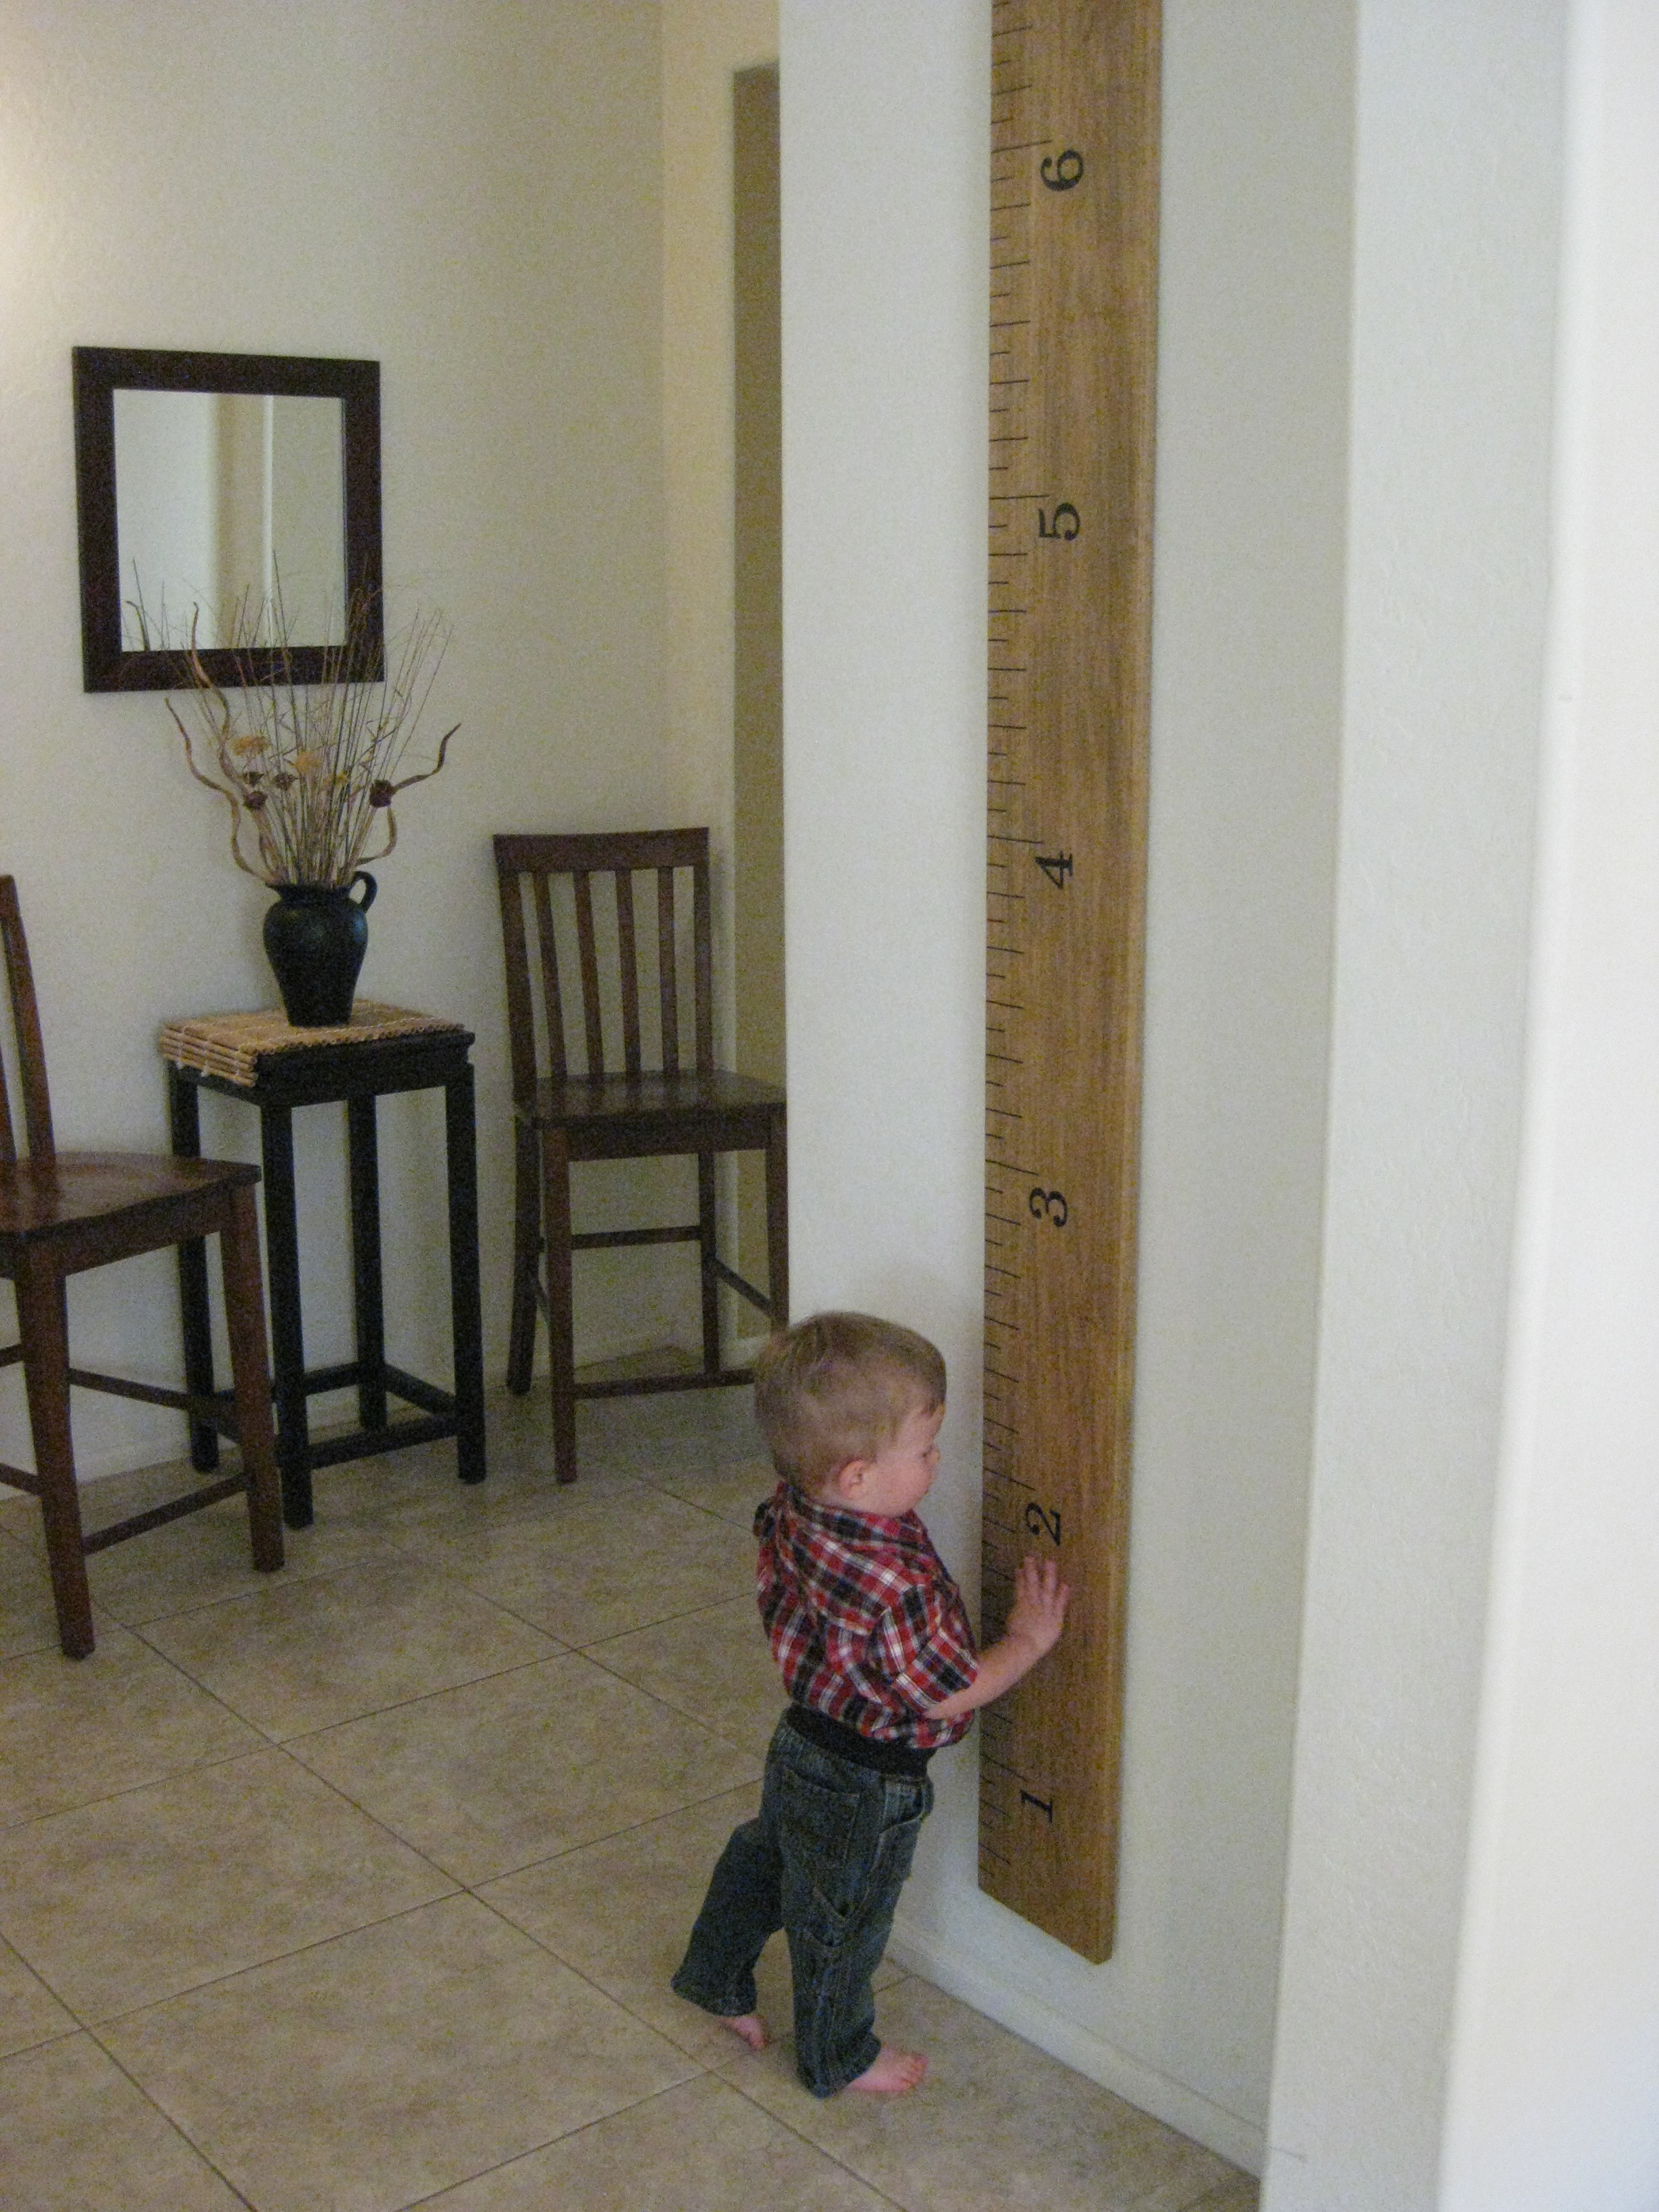 Giant ruler growth chart the moody side of life this way nvjuhfo Gallery